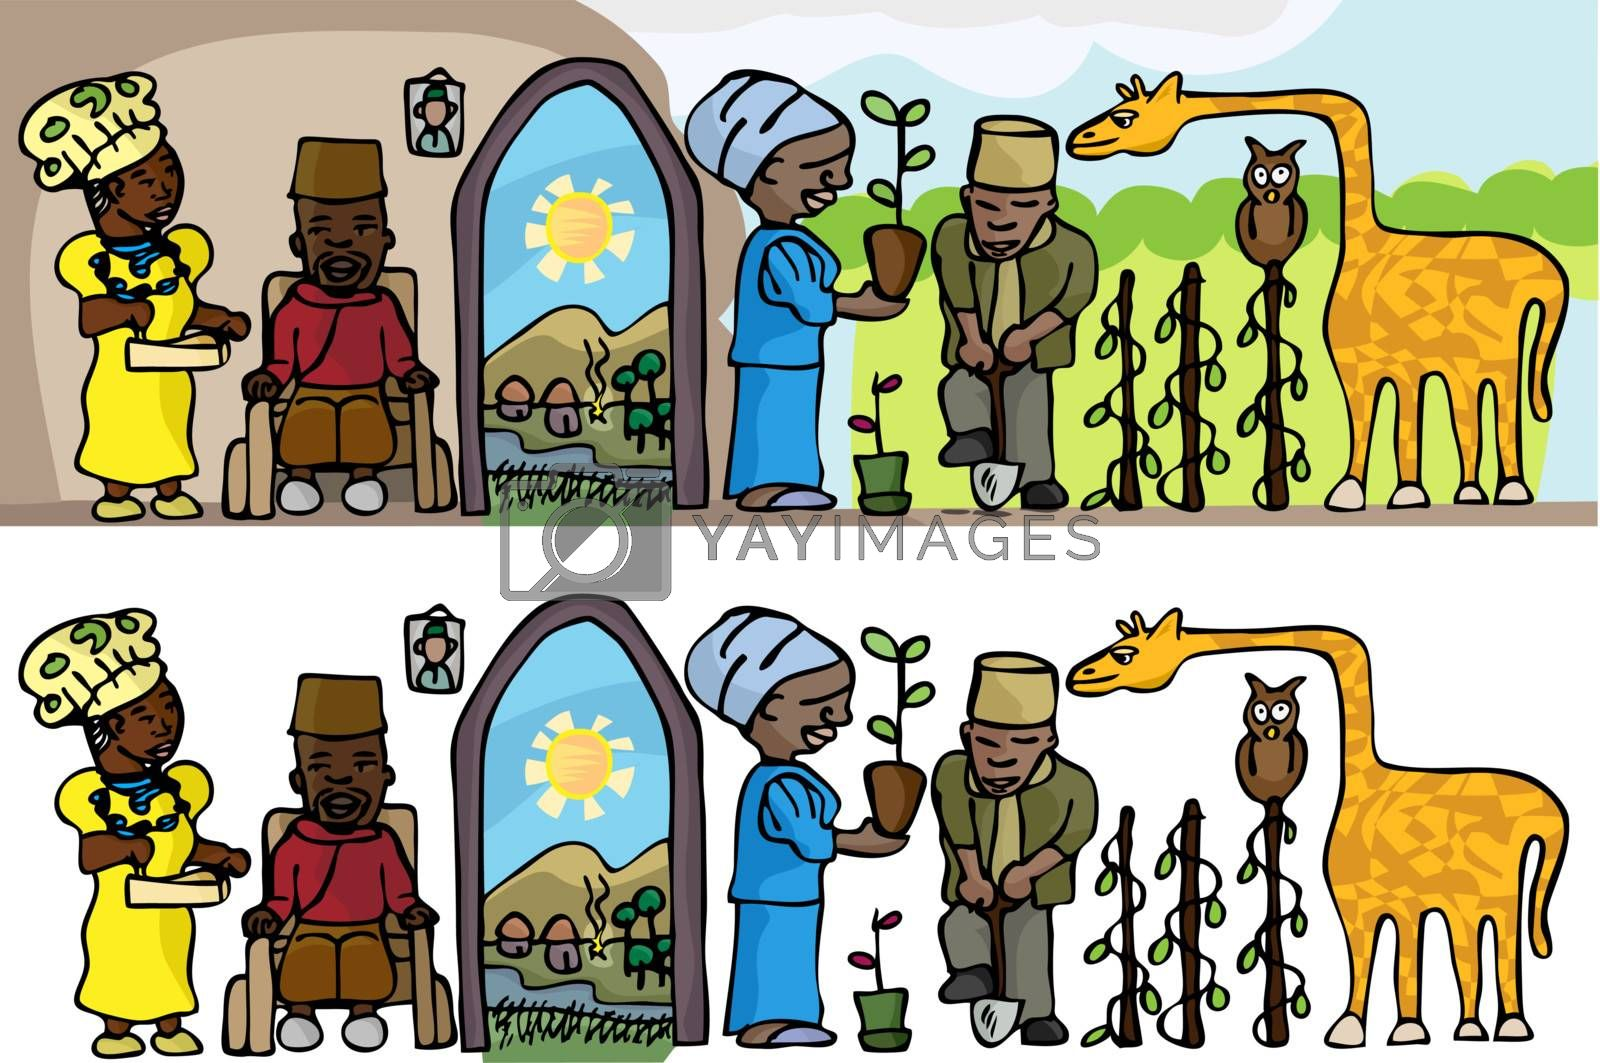 Osi-Ilorin-inspired contemporary rural lifestyle scene as a bas-relief cartoon or stand-alone objects.